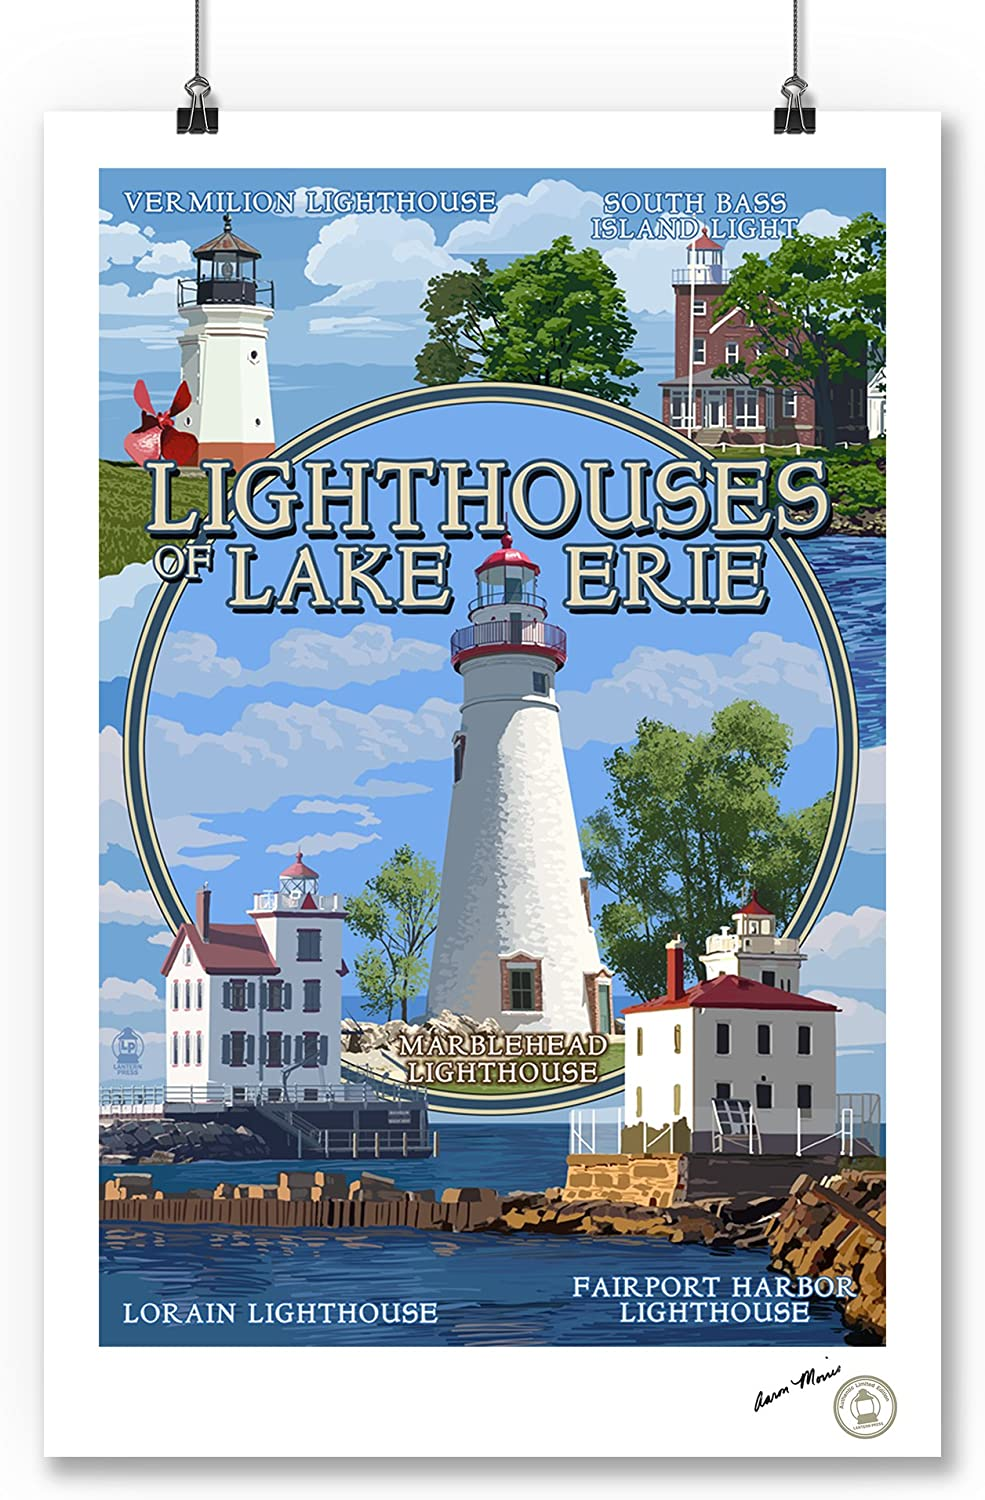 Stone Harbor 24x36 Giclee Gallery Print, Wall Decor Travel Poster Water Tower New Jersey